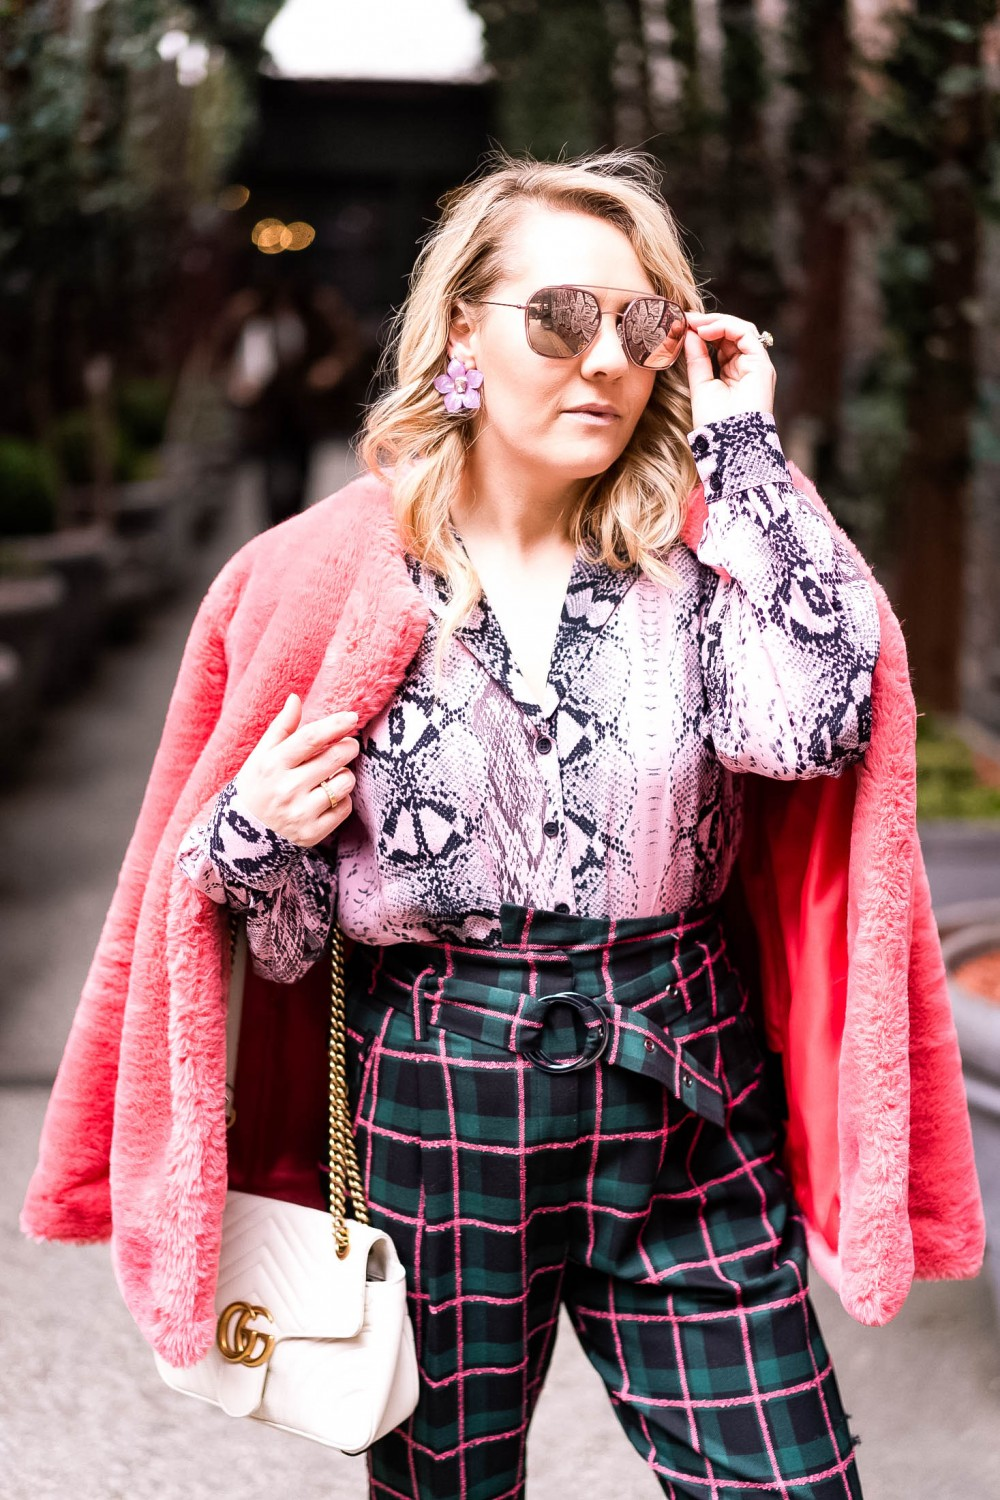 Print Mixing with a Snakeskin Print Blouse and Plaid Pants on Have Need Want! Click on the photo to check out the full post + get my outfit details! #NYFW #streetstyle #printmixing #outfitdetails #winterstyle